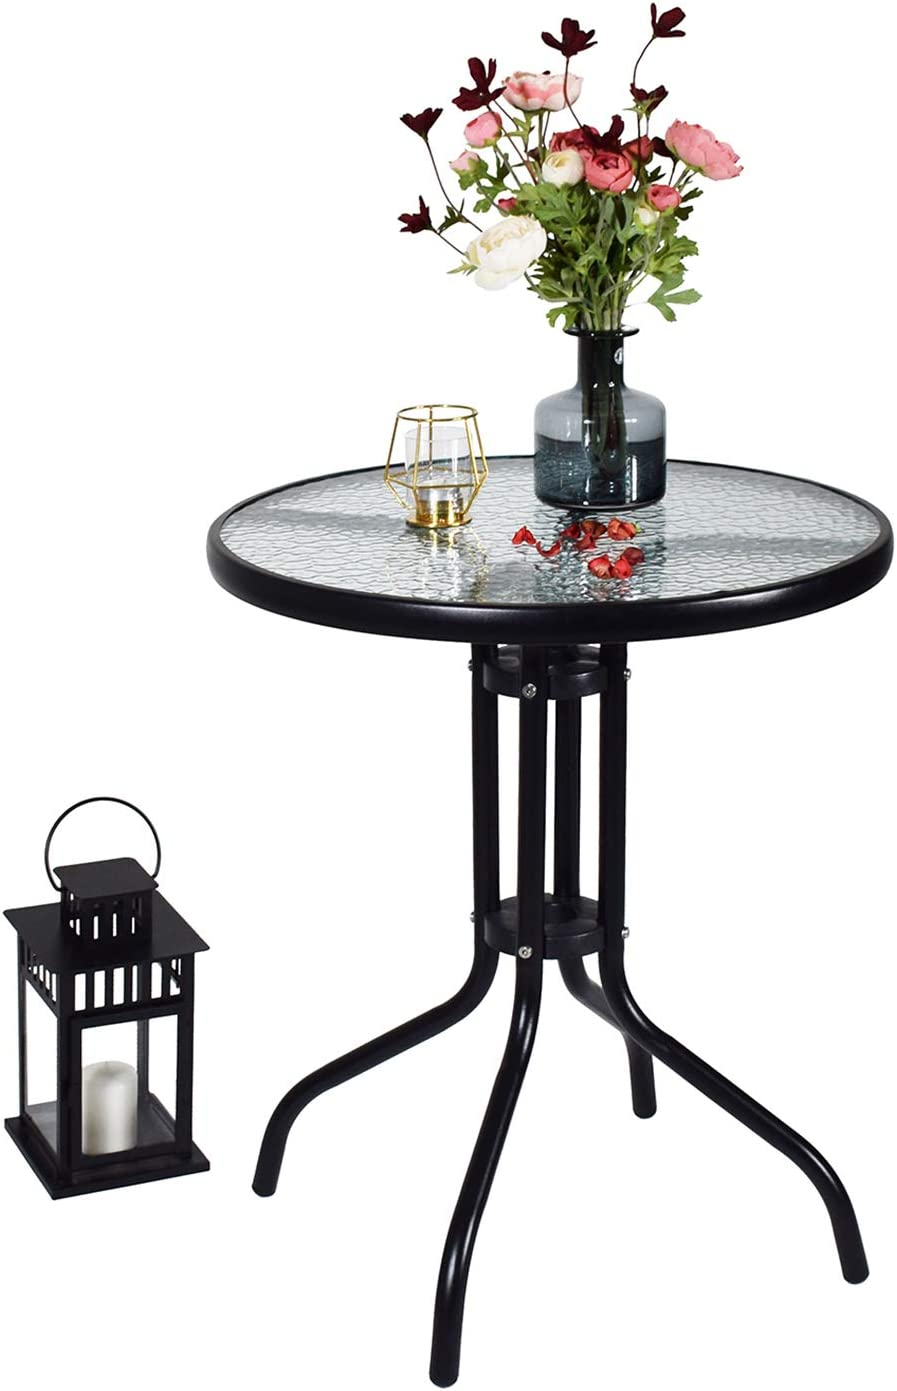 Love Peace 24 x 24 Outdoor Bistro Table Metal Round Patio Side Table Outdoor Coffee Table Furniture Garden Backyard Dining Table, W Elegant Water Ripple Glass Table Top, Black